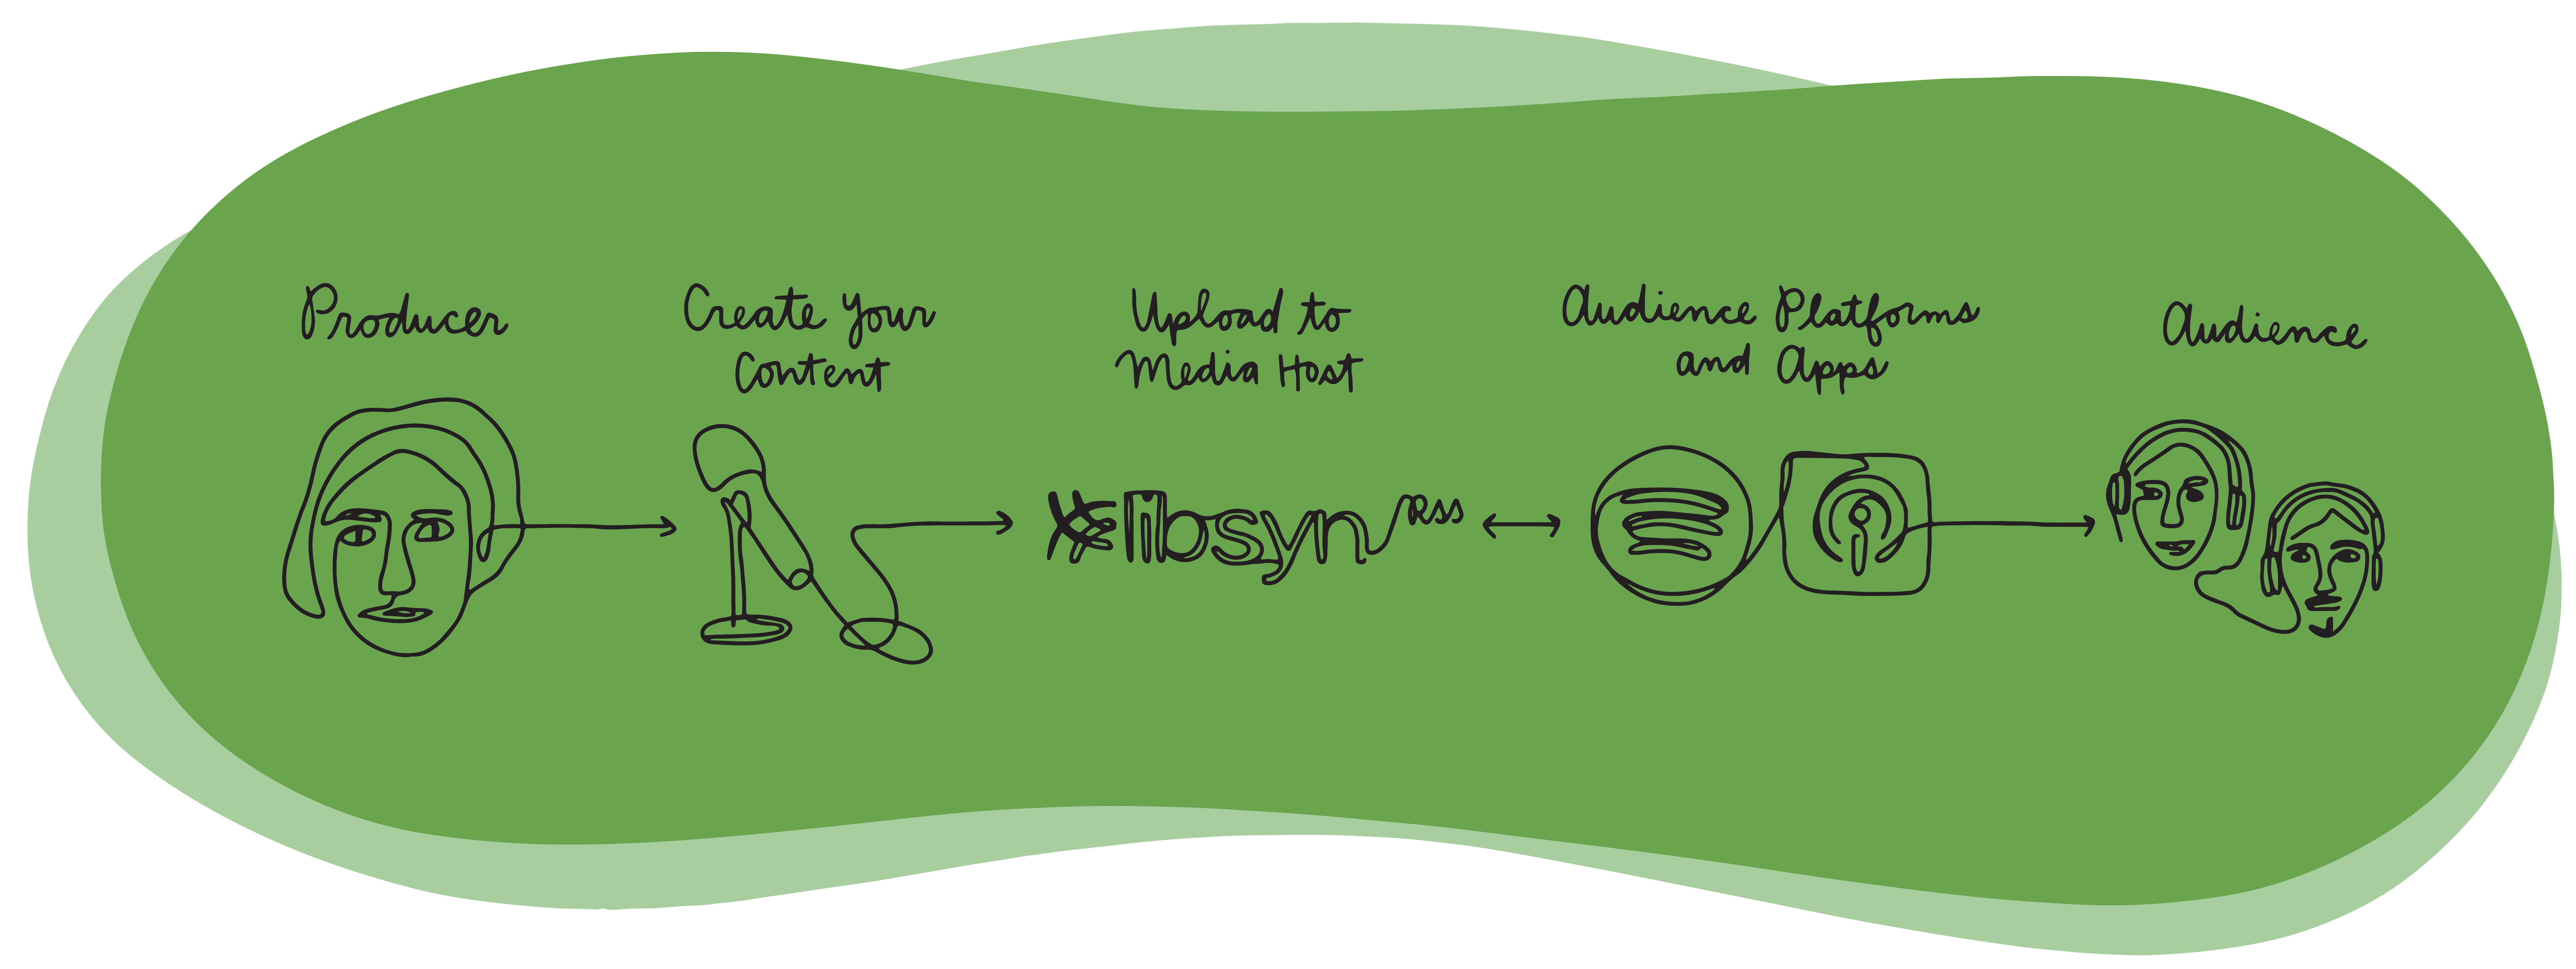 Libsyn-Illustrations-HostingProcess_Color.png